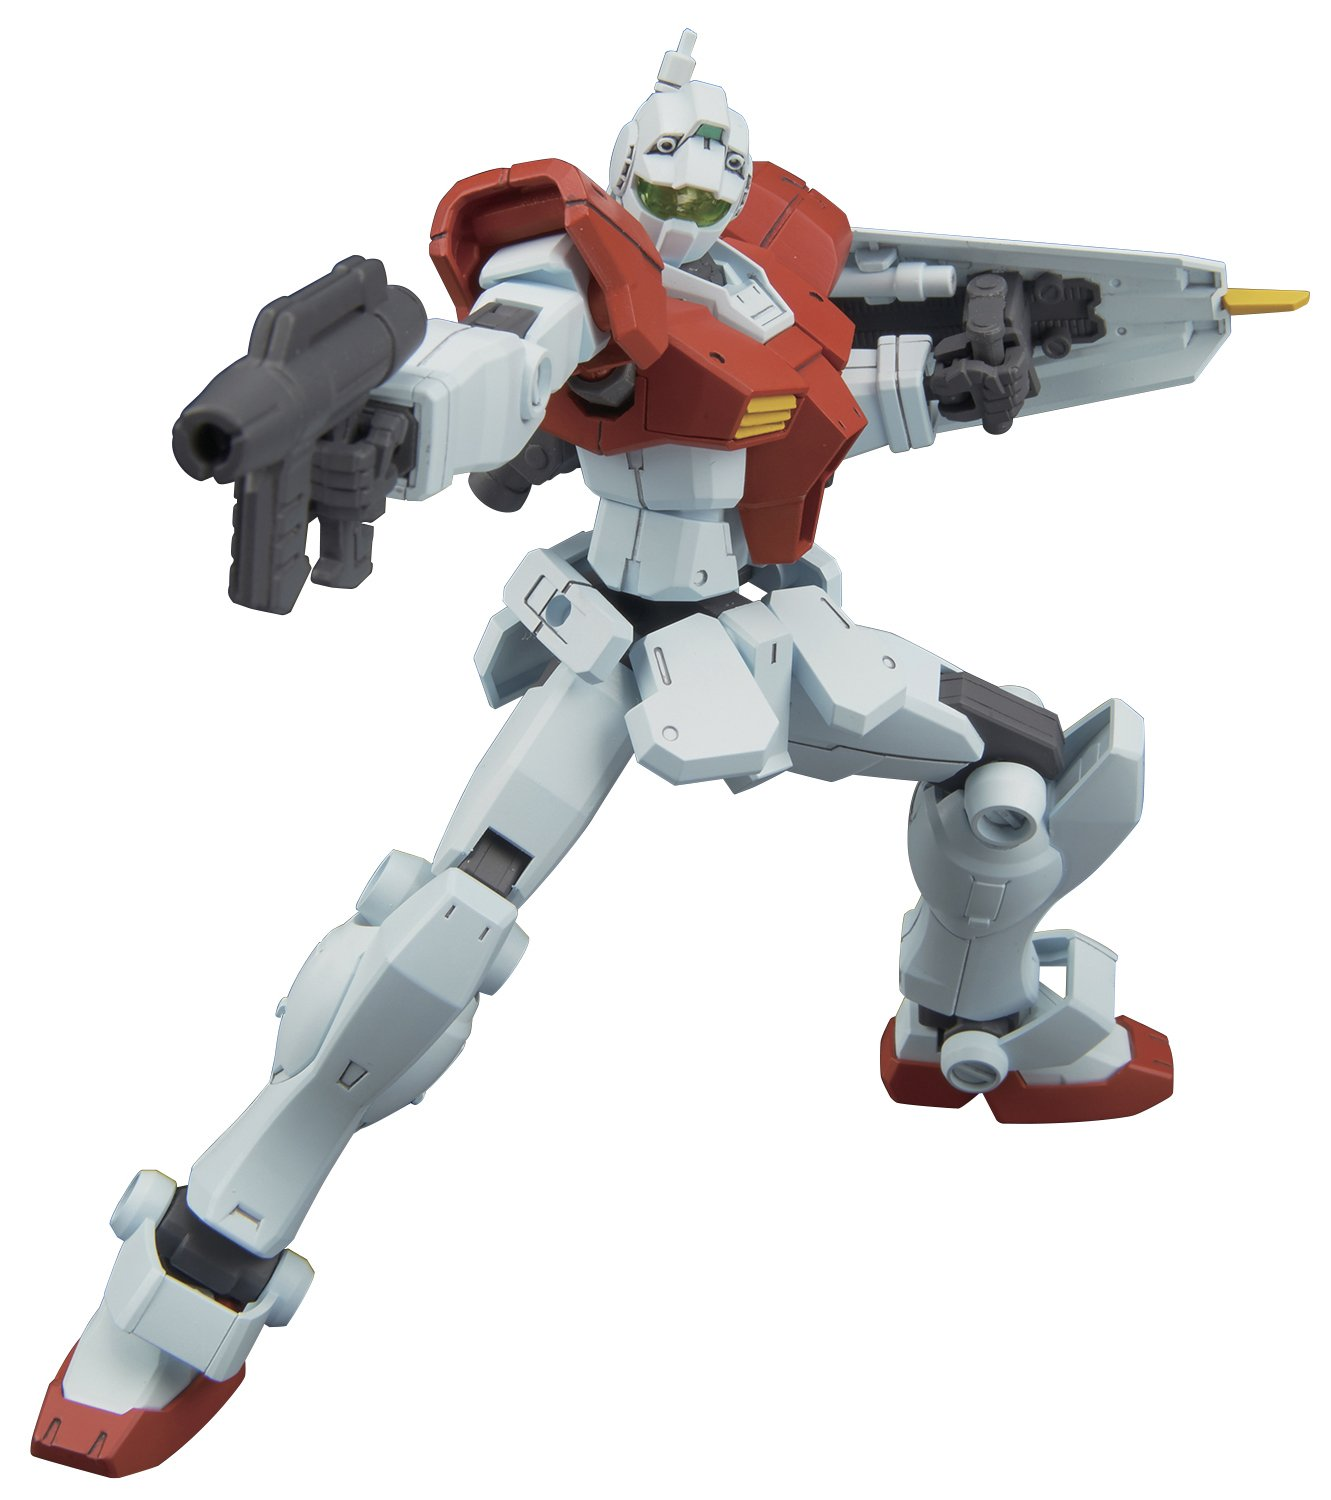 Bandai Hobby Hgbf 1/144 GM Build Fighters Model Kit Figure